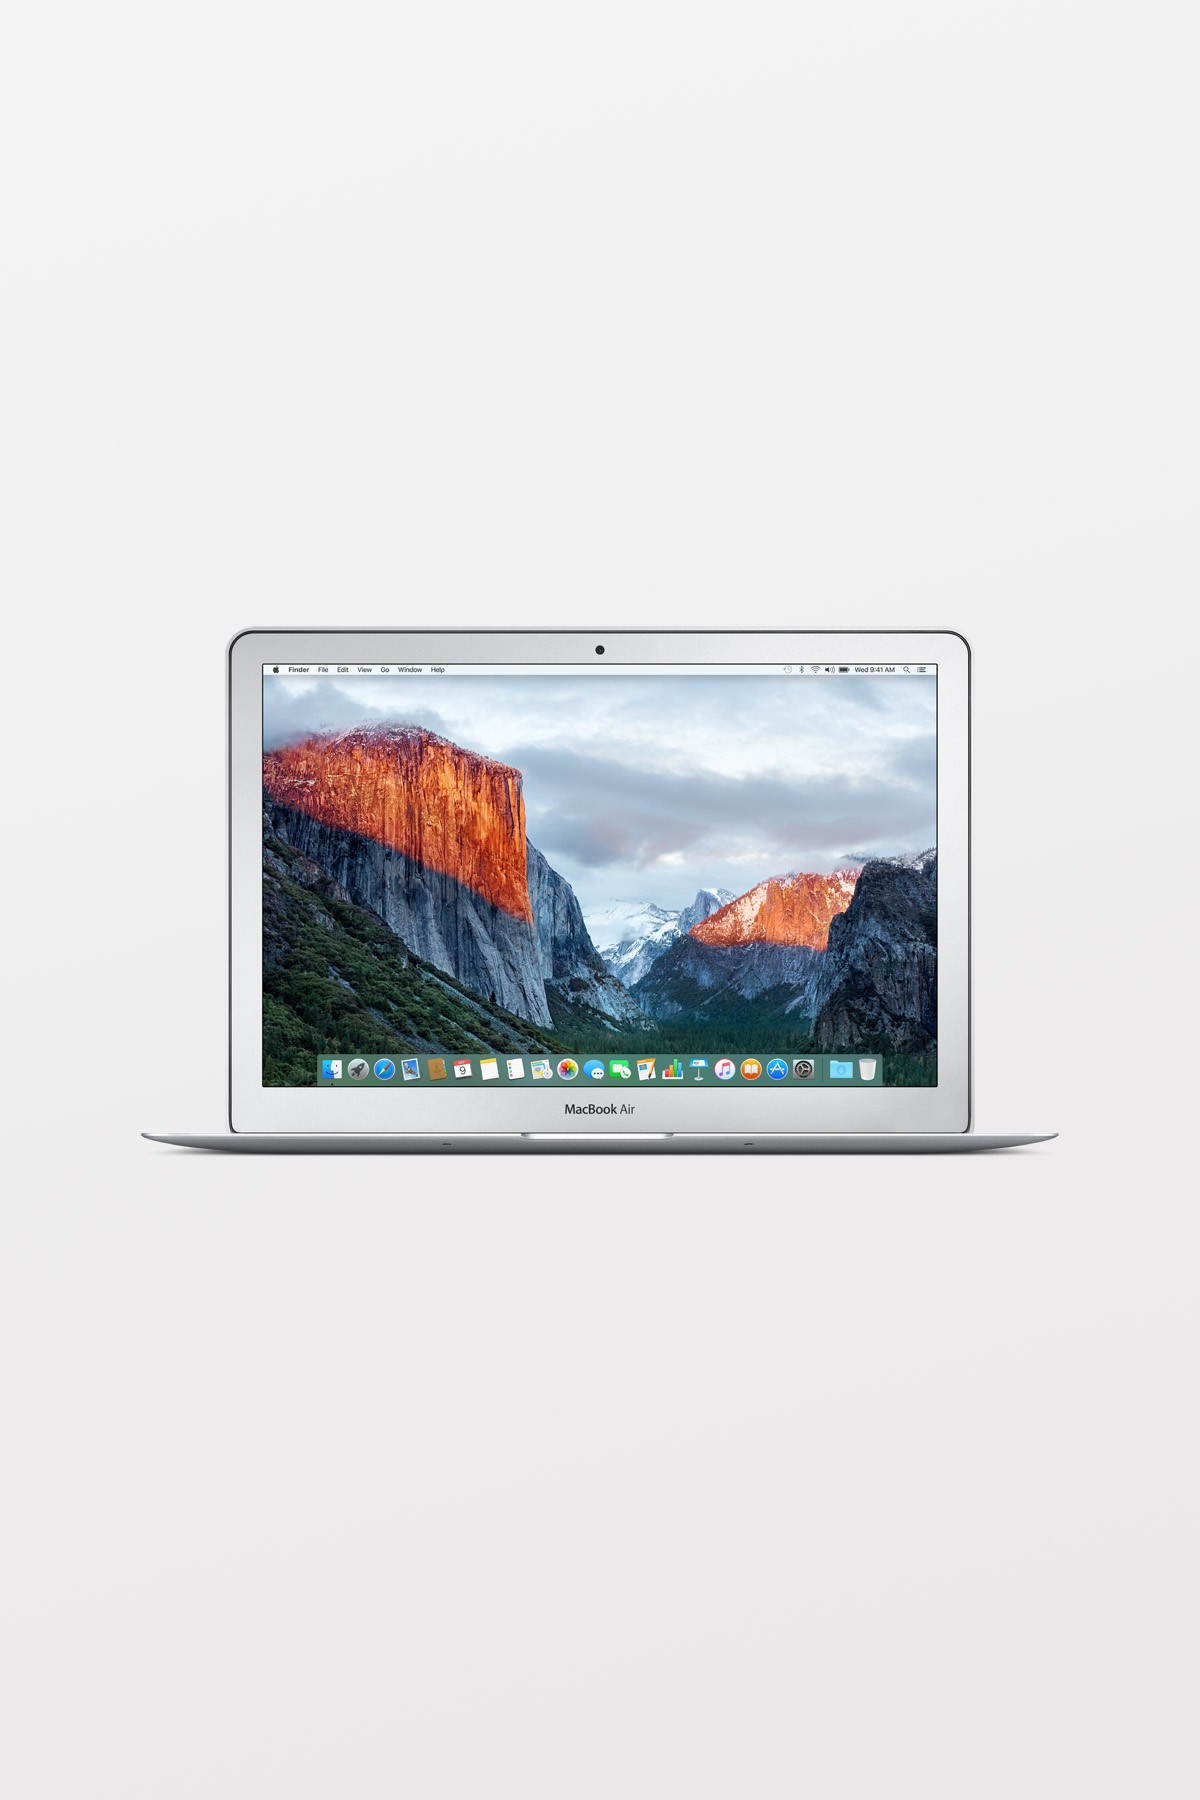 Apple MacBook Air 13-inch (1.4GHz i5/8GB/256GB Flash/Intel HD Graphics 5000) - Apple Certified Refurbished